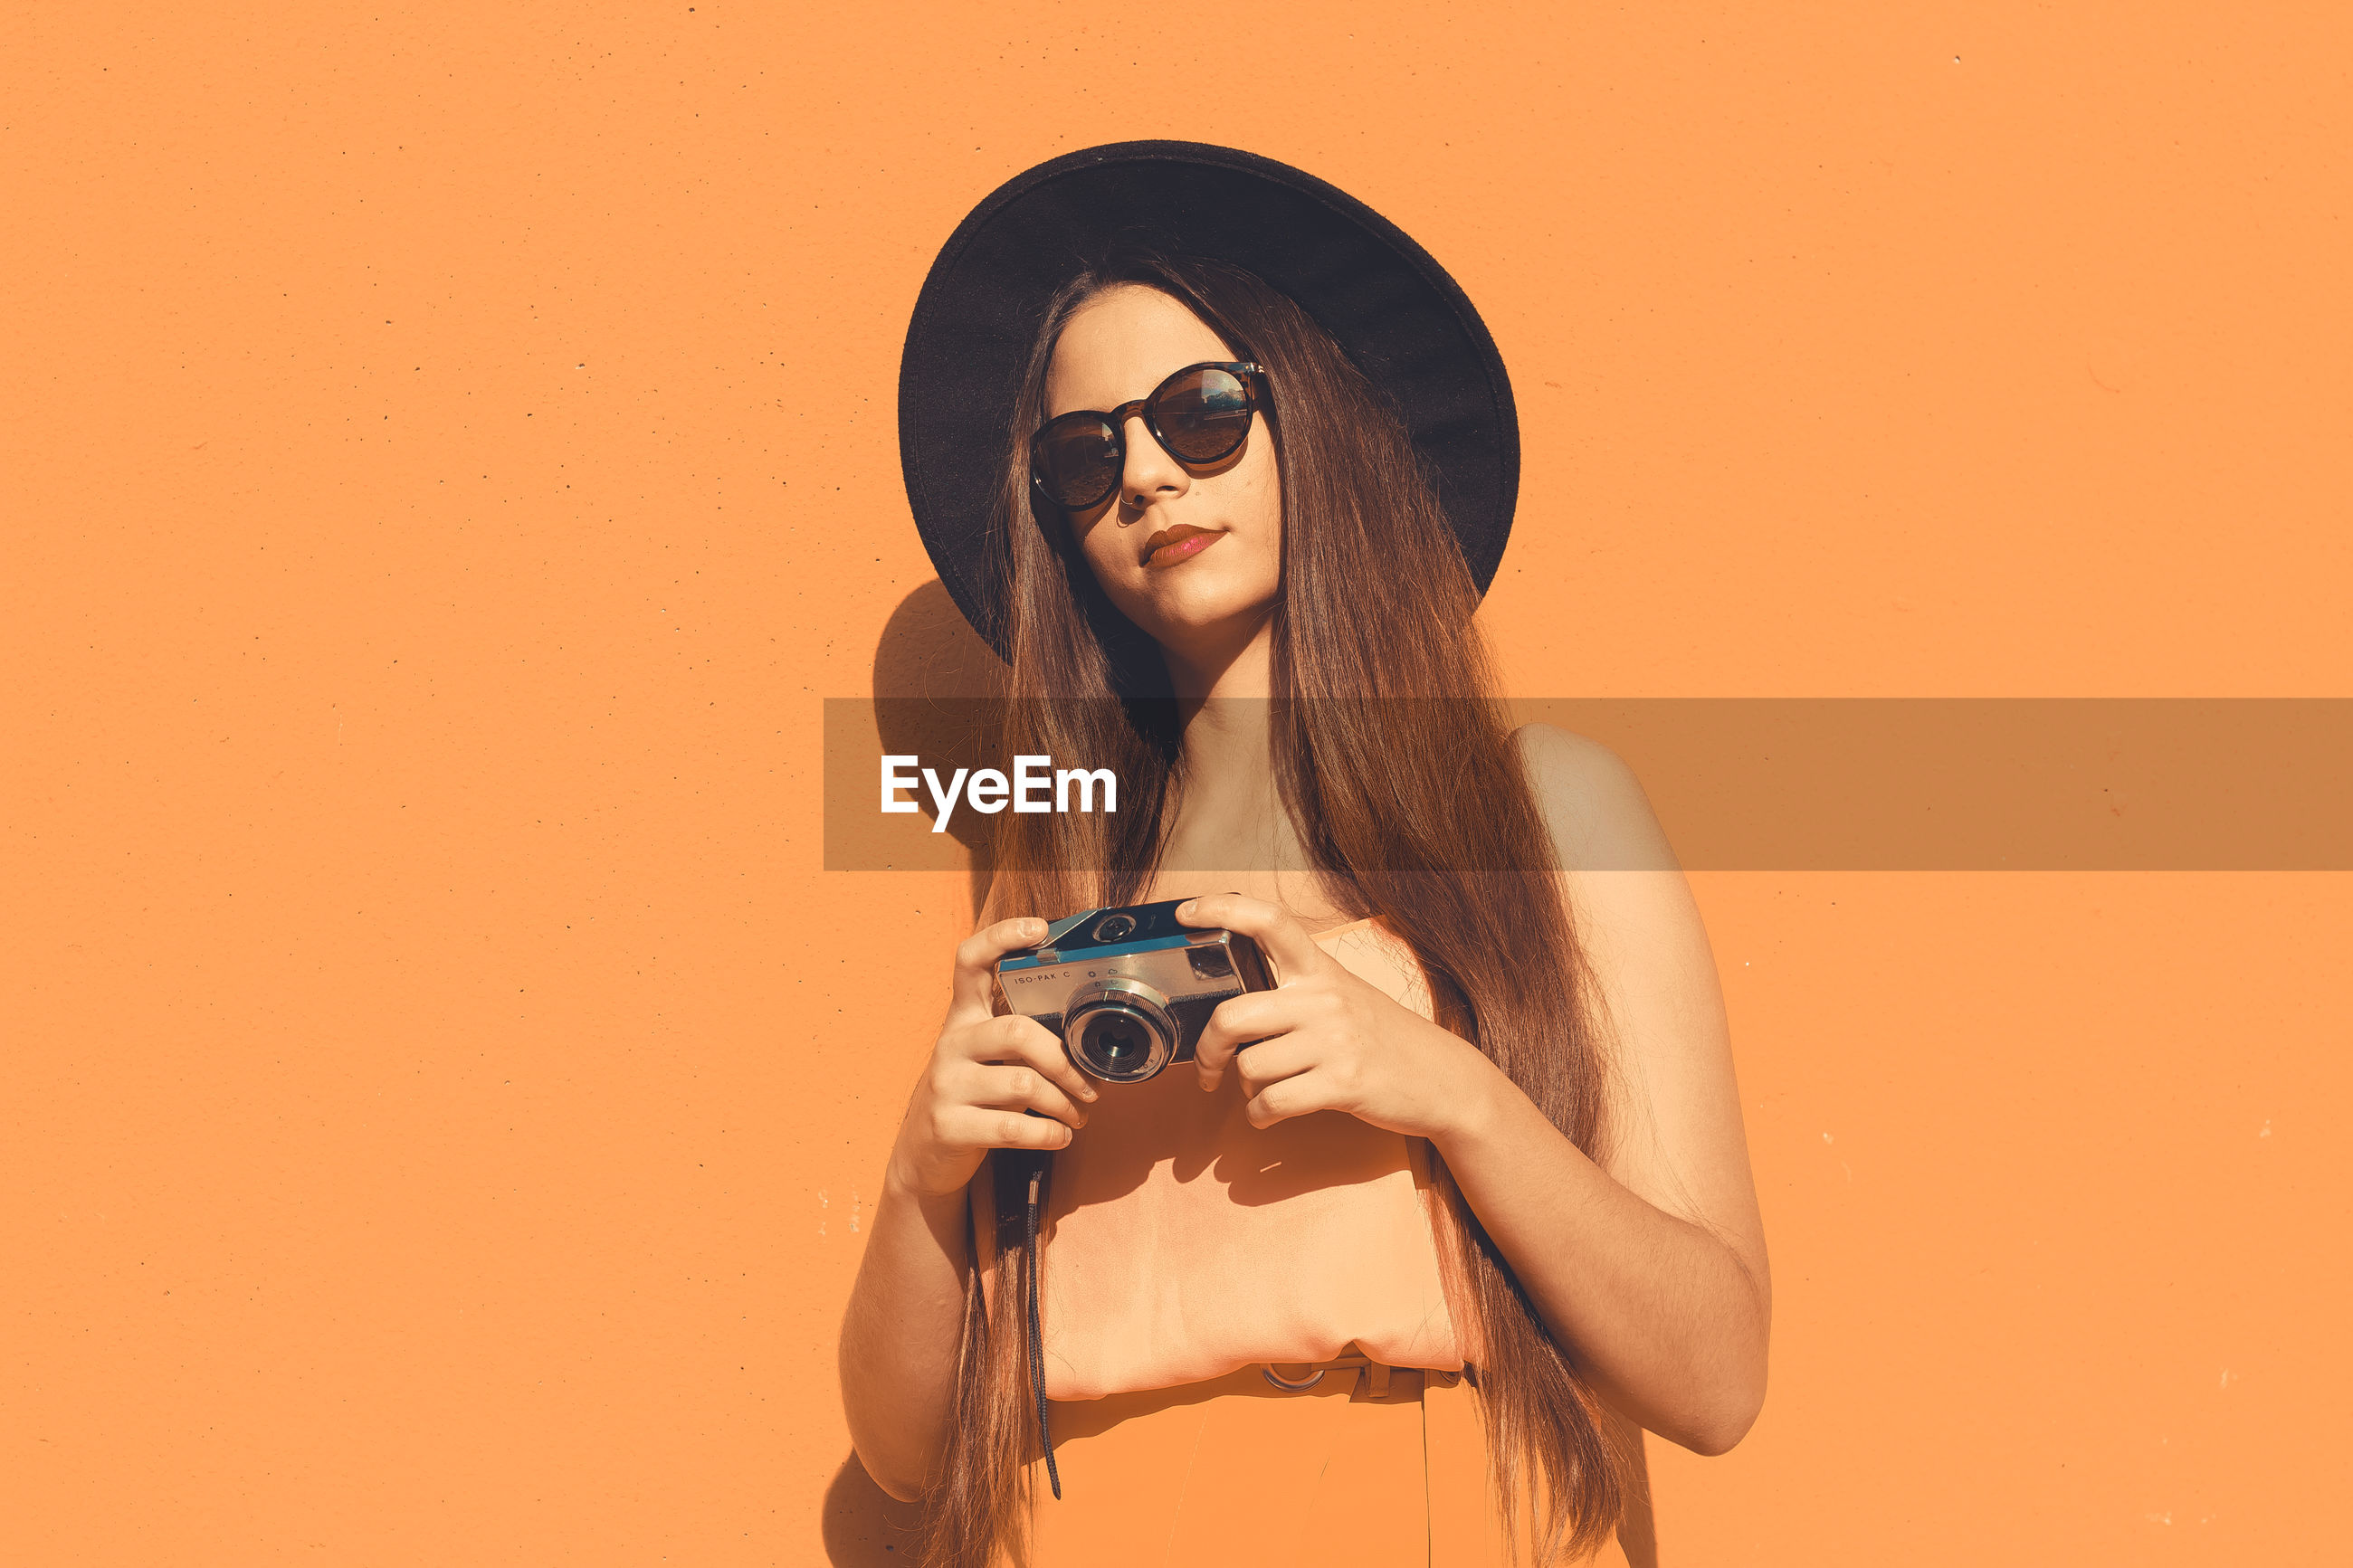 Portrait of young woman wearing sunglasses and hat while holding camera against orange background